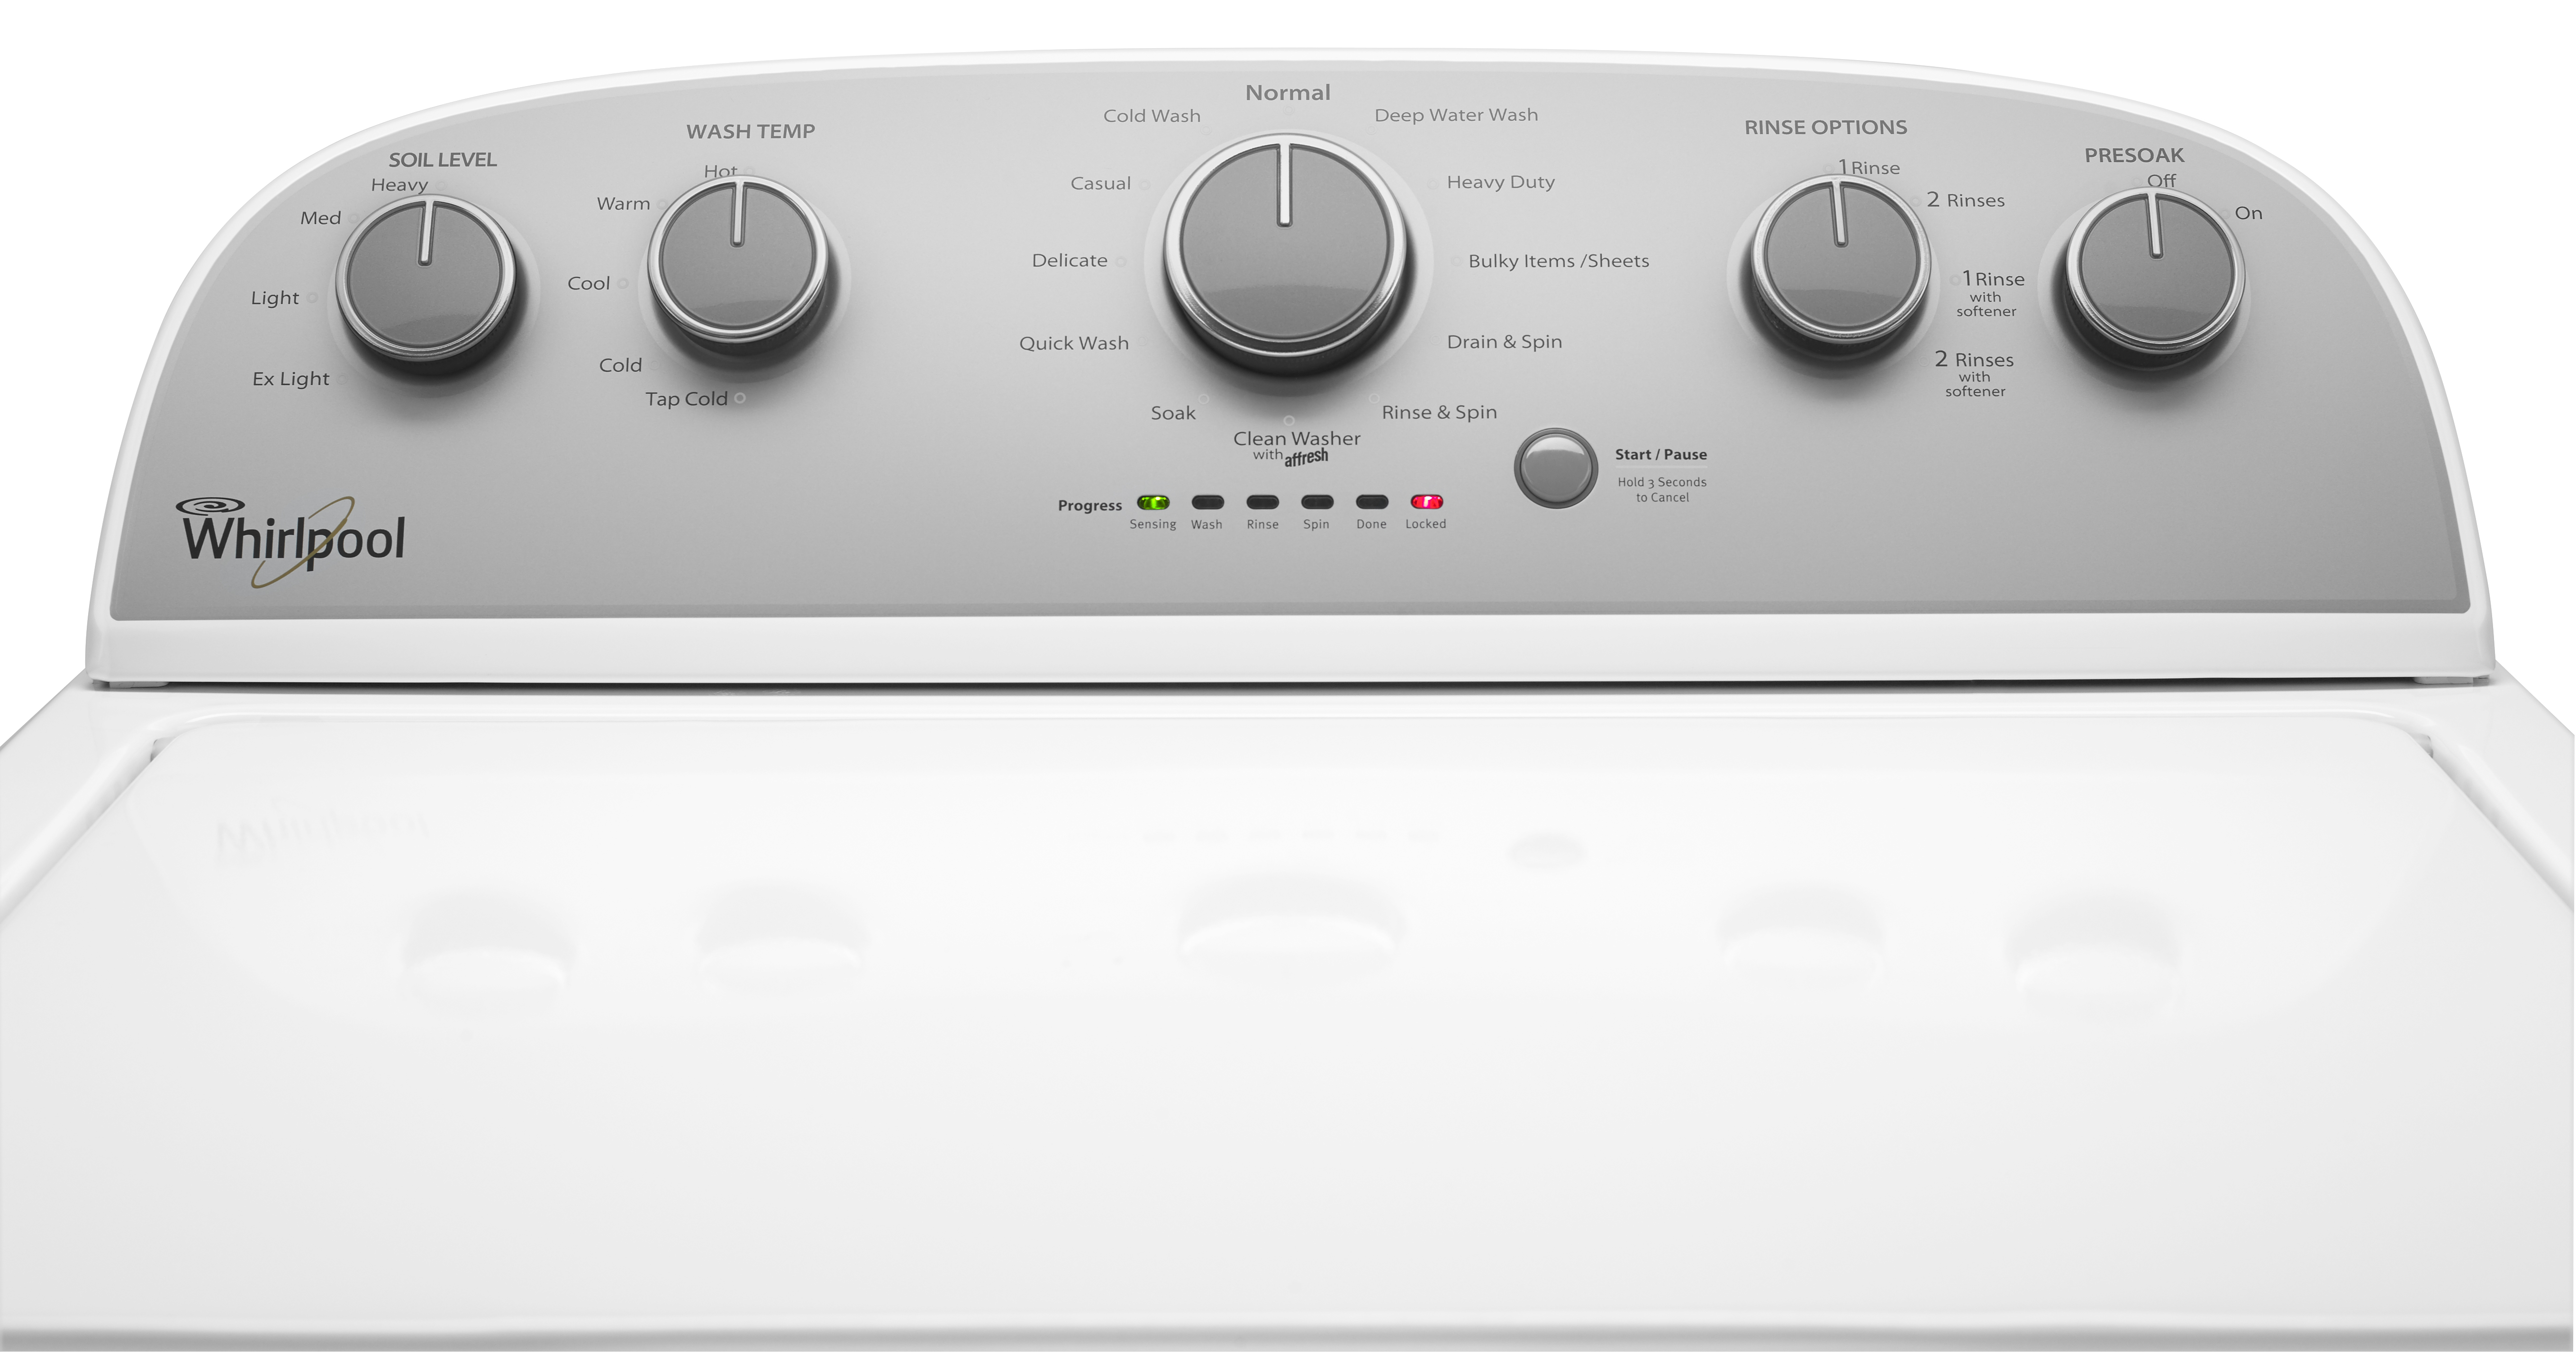 Whirlpool WTW5000DW 4.3 cu. ft. Cabrio Top Load Washer w/ Stainless Steel Wash Basket - White